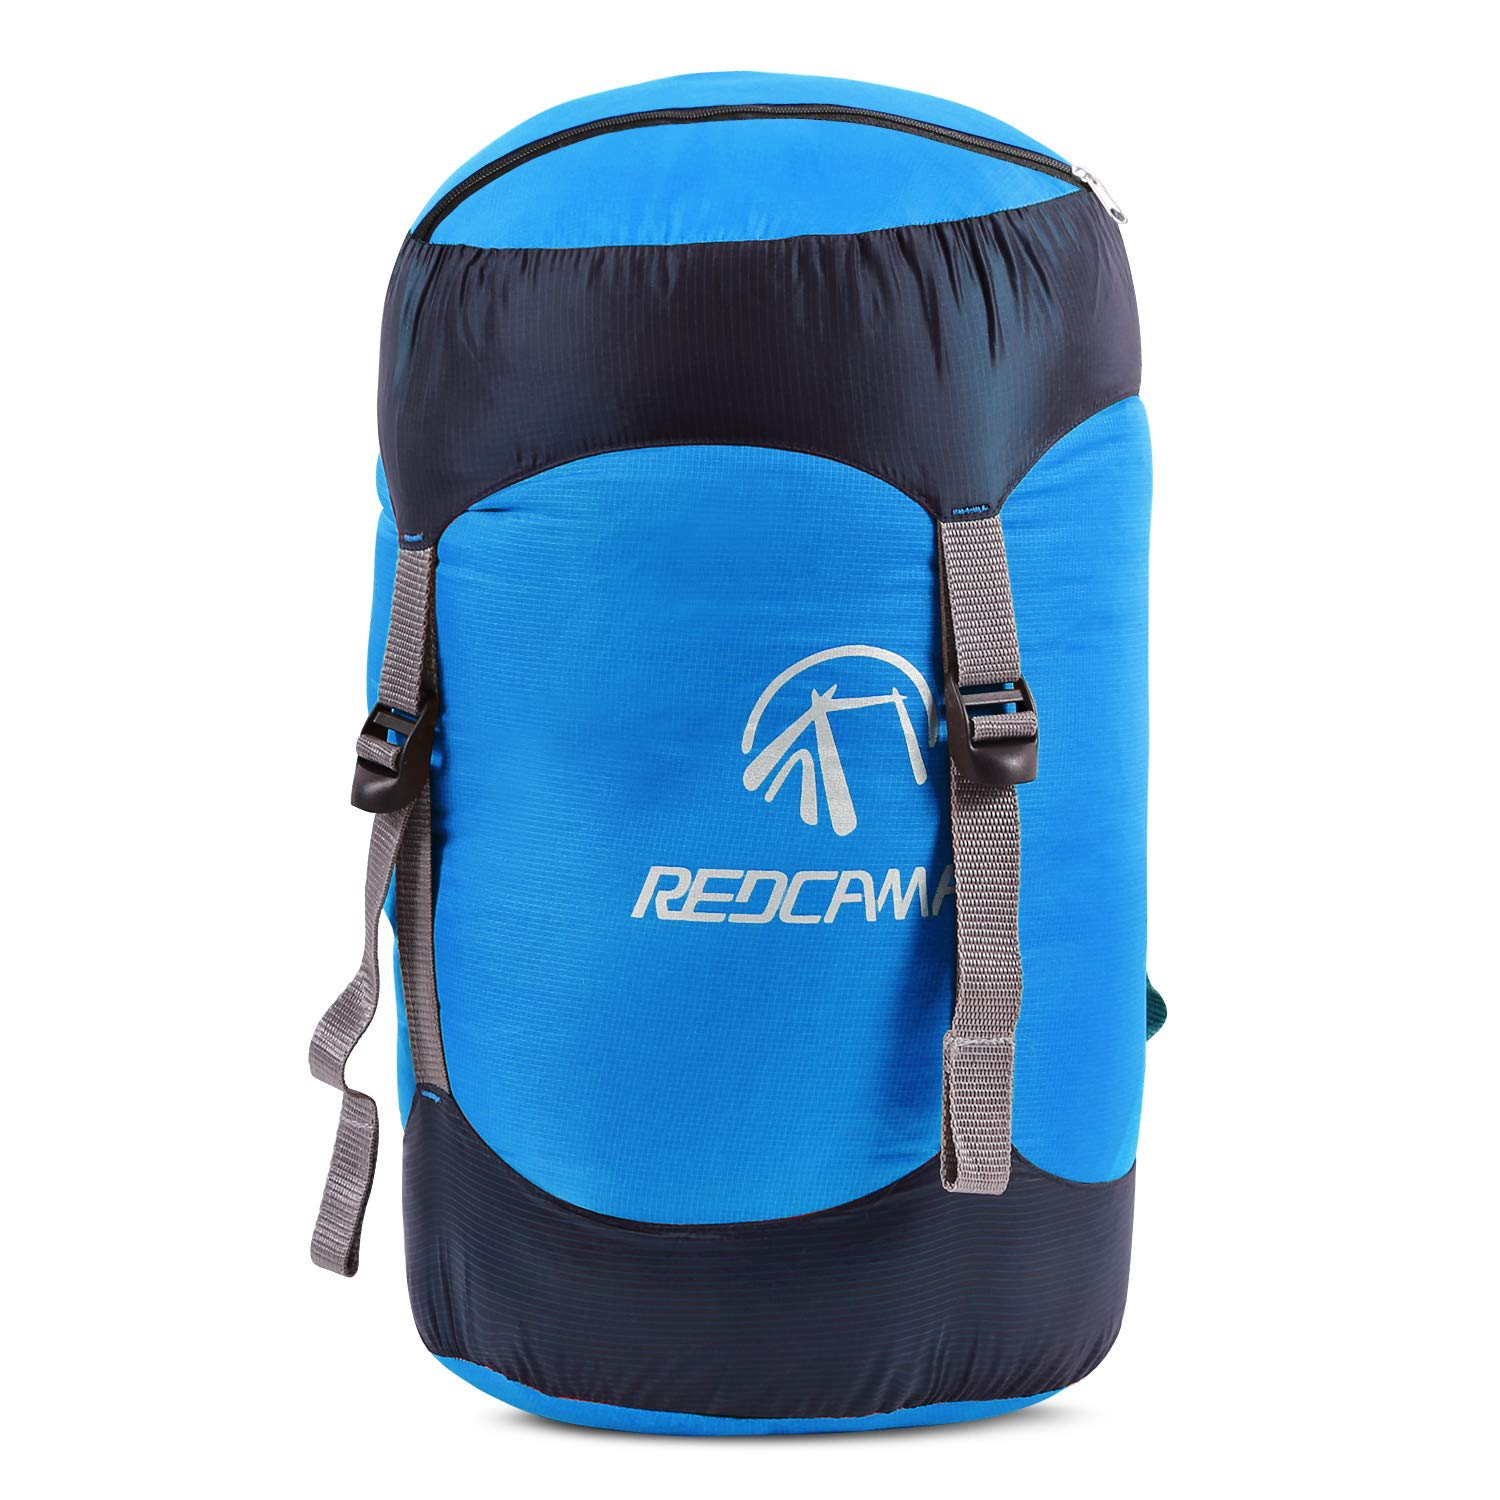 REDCAMP Nylon Compression Stuff Sack, 6L/15L/25L/35L Lightweight Sleeping Bag Compression Sack Great for Backpacking, Hiking and Camping (Blue S) by REDCAMP